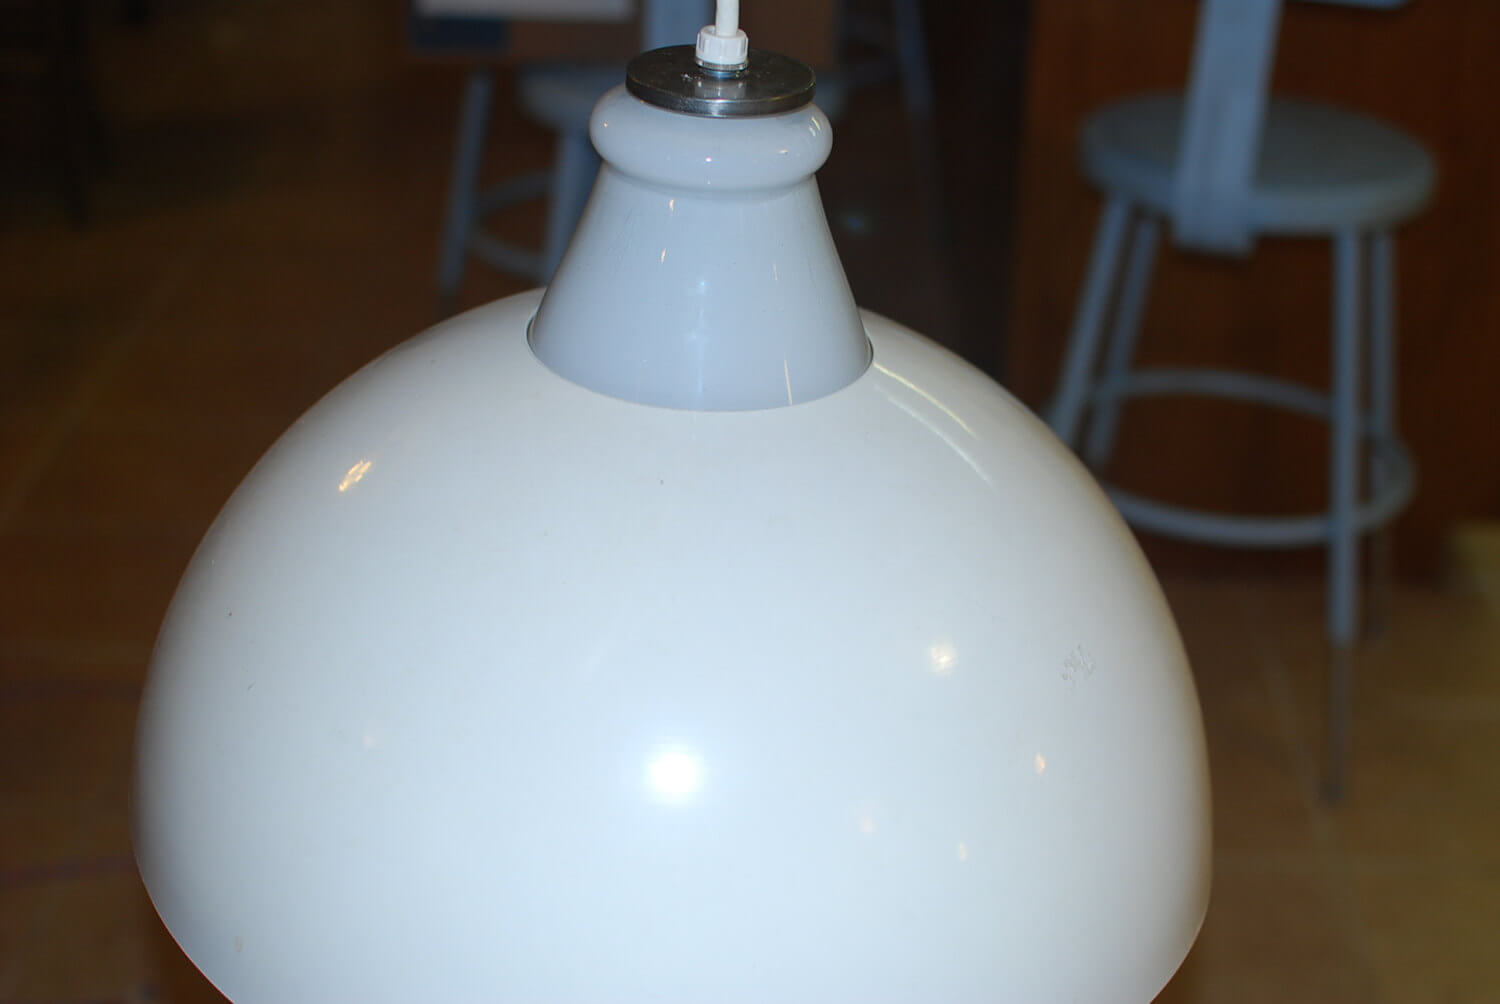 200 New Old Stock 1960s and 1970s vintage lights from Moon Lighting ...